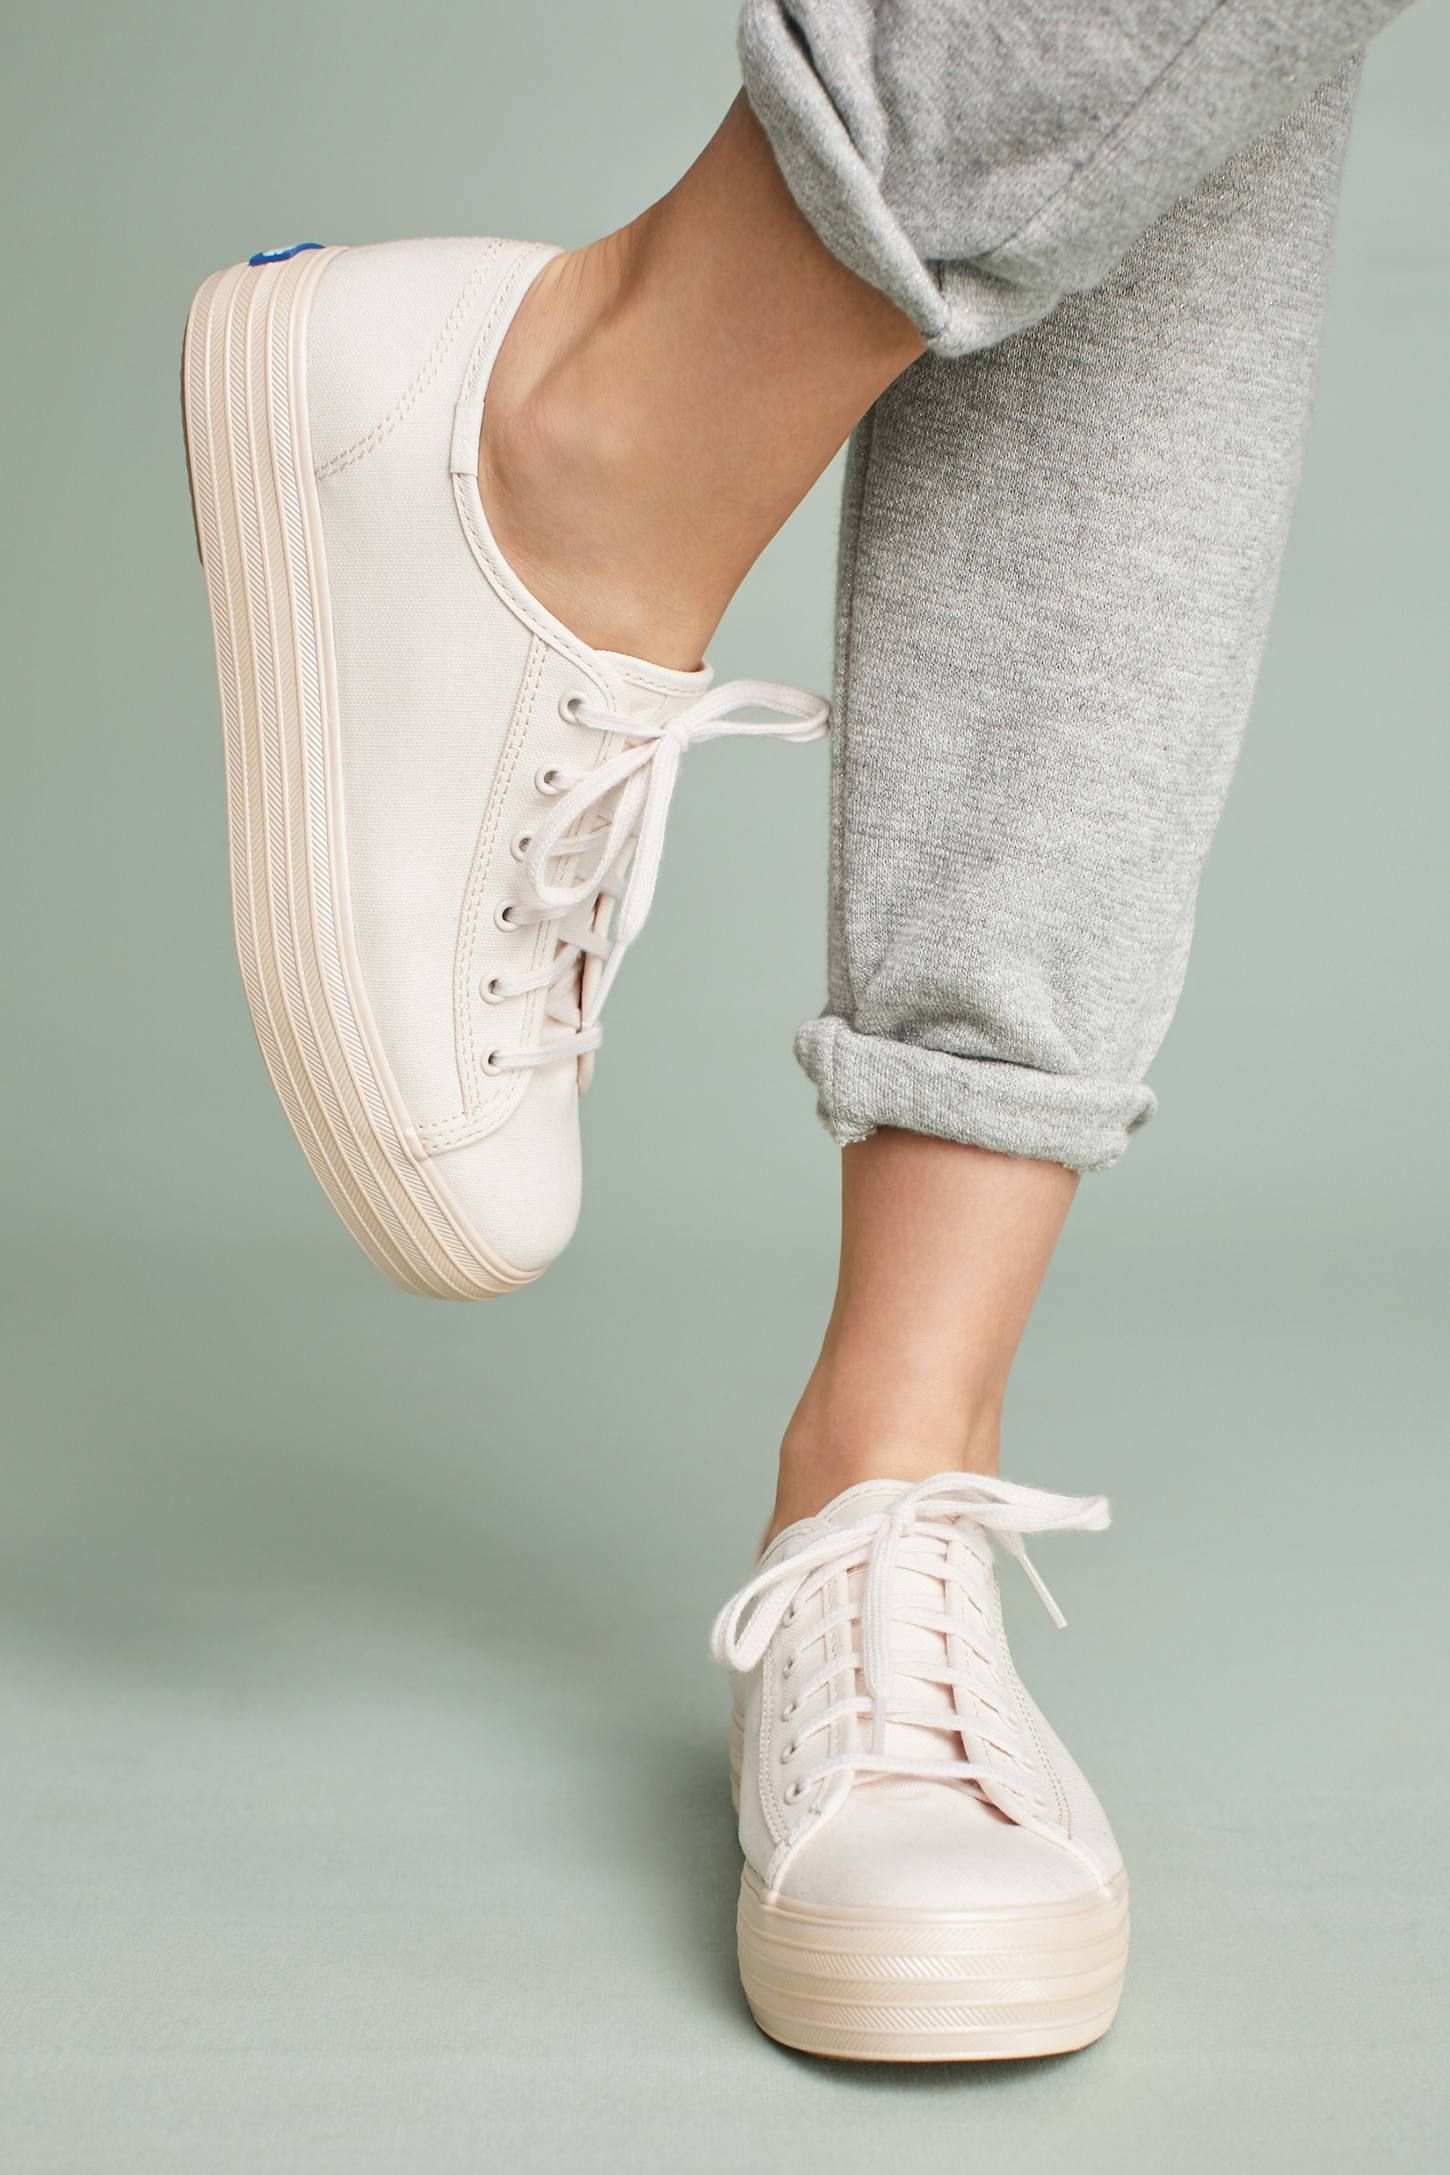 6253a6ffce7 Shop the Keds Triple Kick Sneakers and more Anthropologie at Anthropologie  today. Read customer reviews